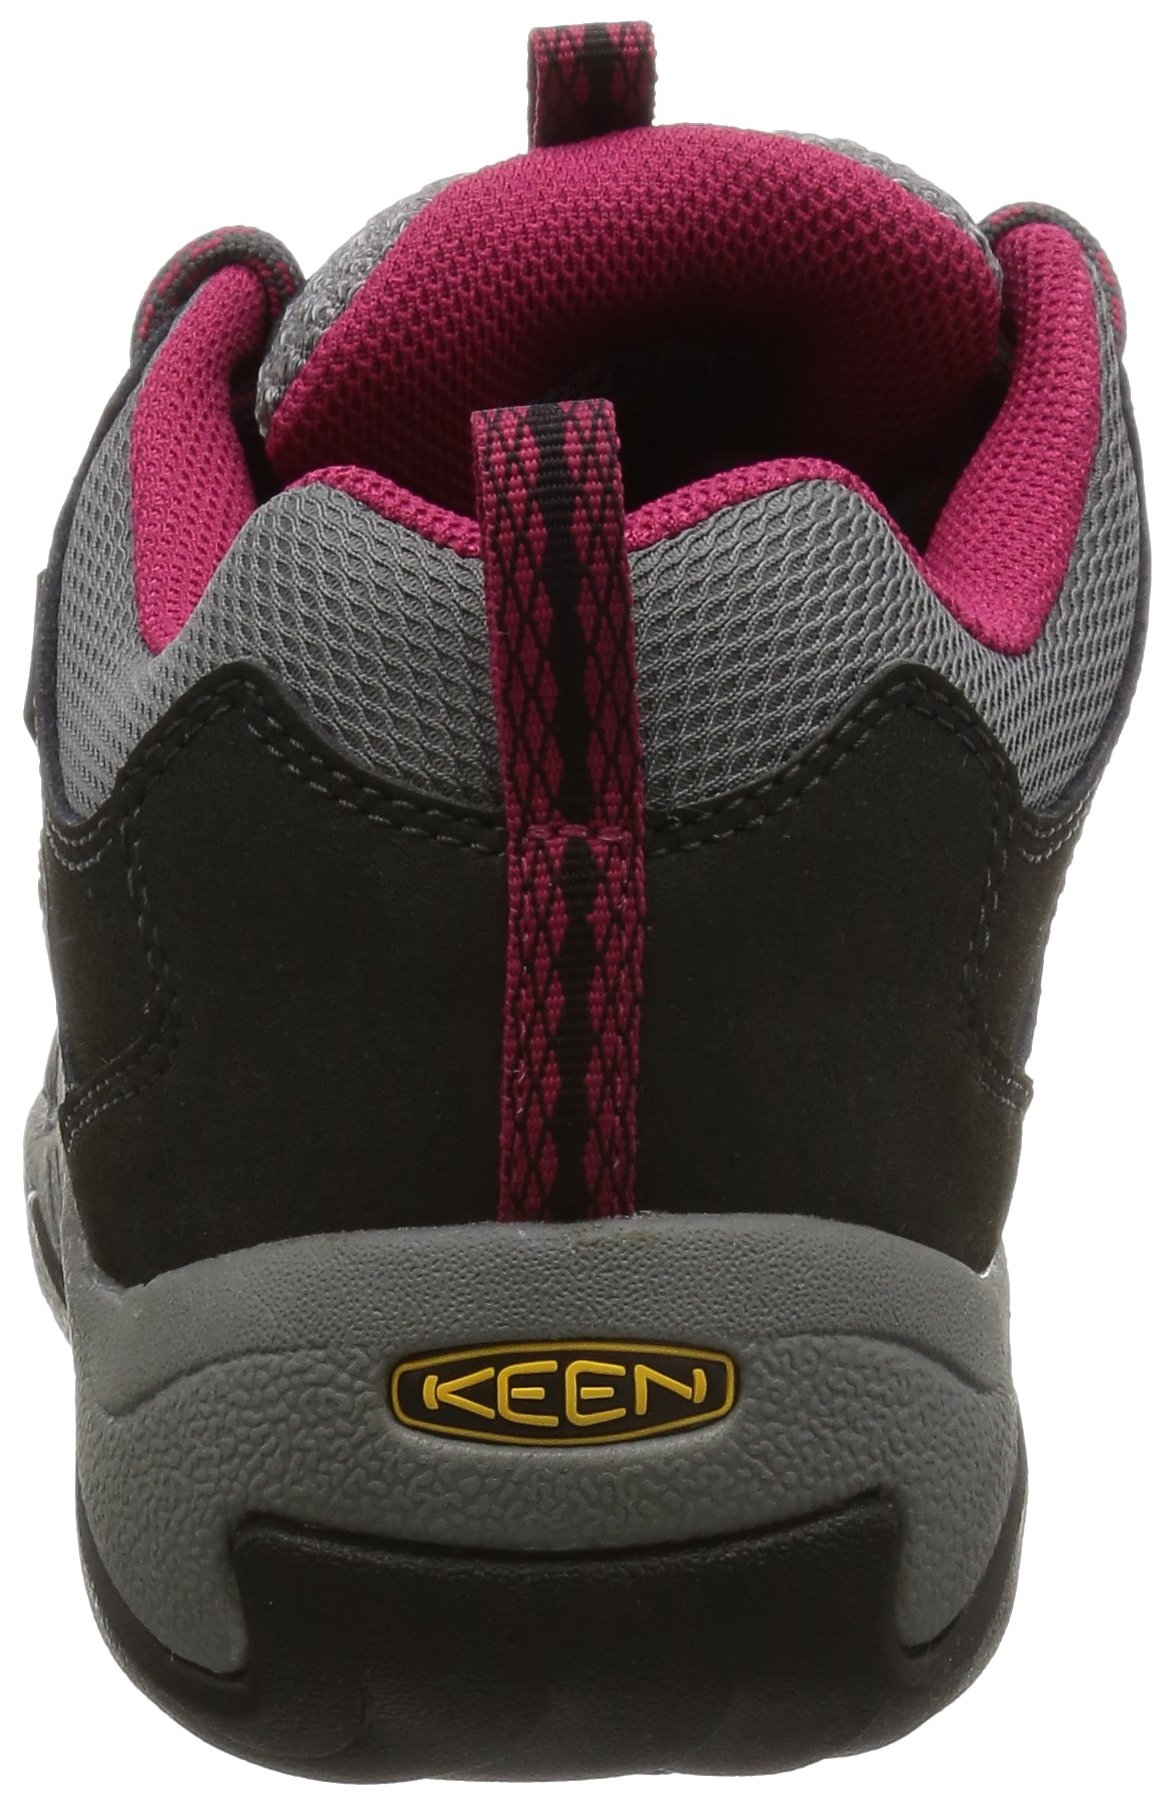 KEEN Women's Oakridge Waterproof Shoe, Magnet/Rose, 9 M US by KEEN (Image #2)